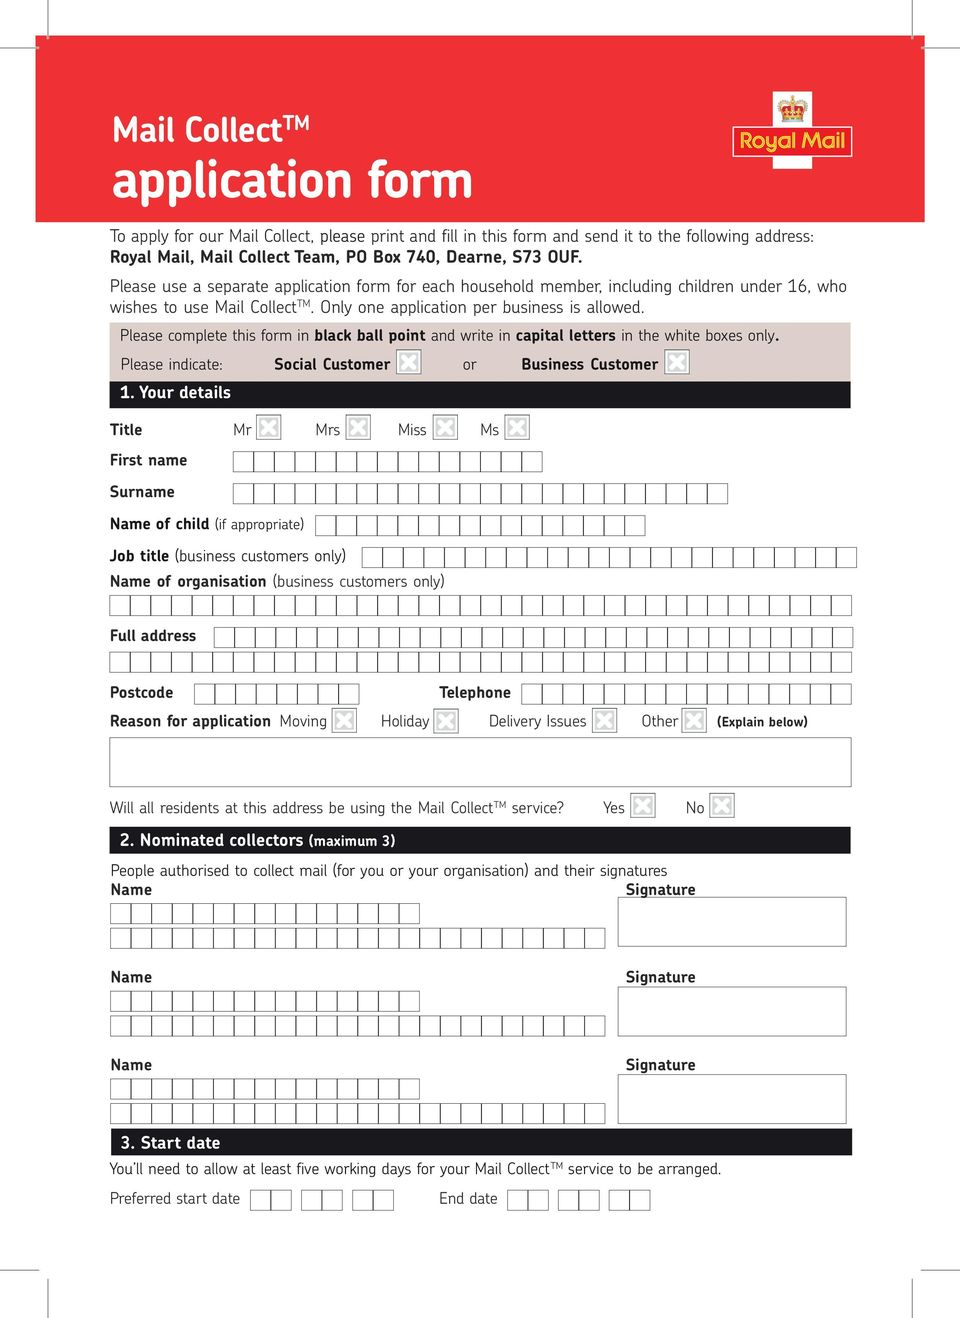 Please complete this form in black ball point and write in capital letters in the white boxes only. Please indicate: Social Customer or Business Customer 1.